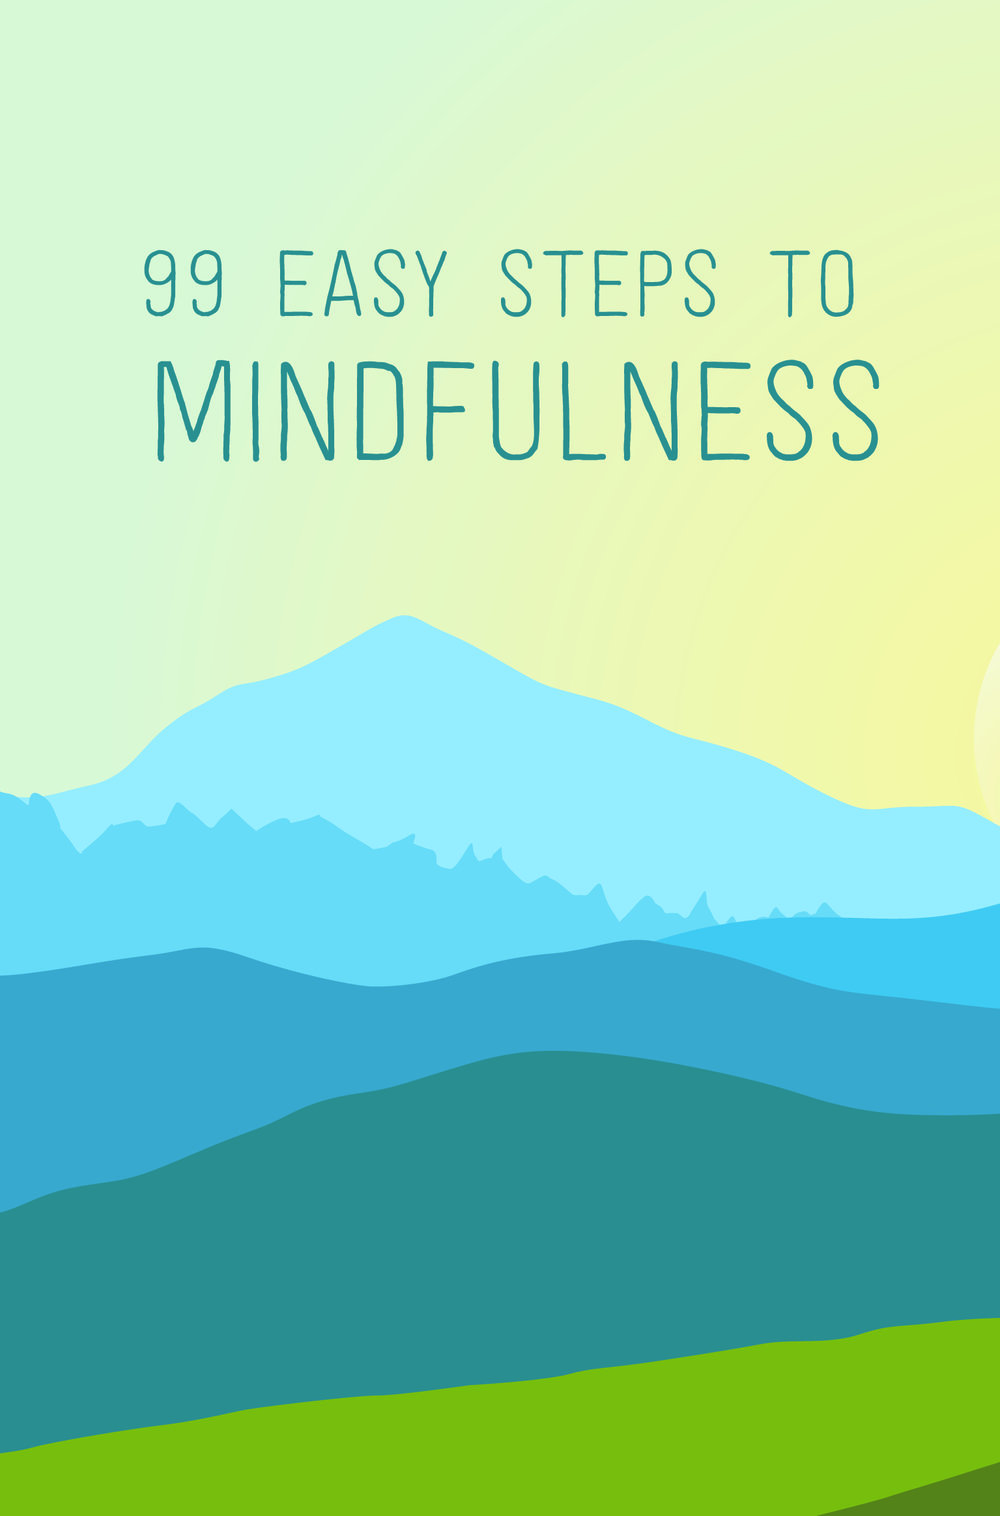 99 Easy Steps  to Mindfulness cover e catalogue.jpg